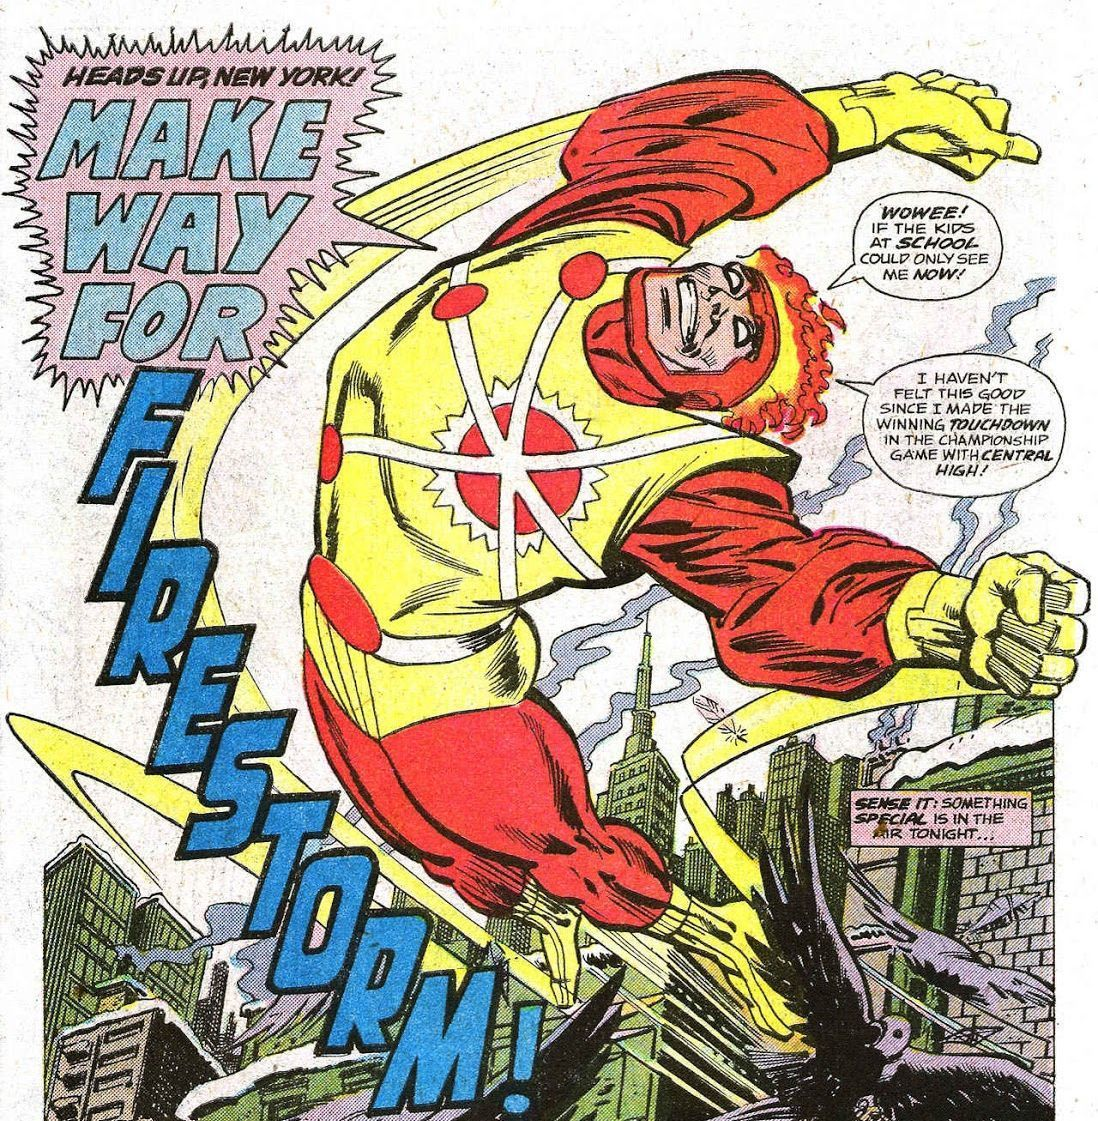 Firestorm #1 (Written by Gerry Conway, Art by Al Milgrom)